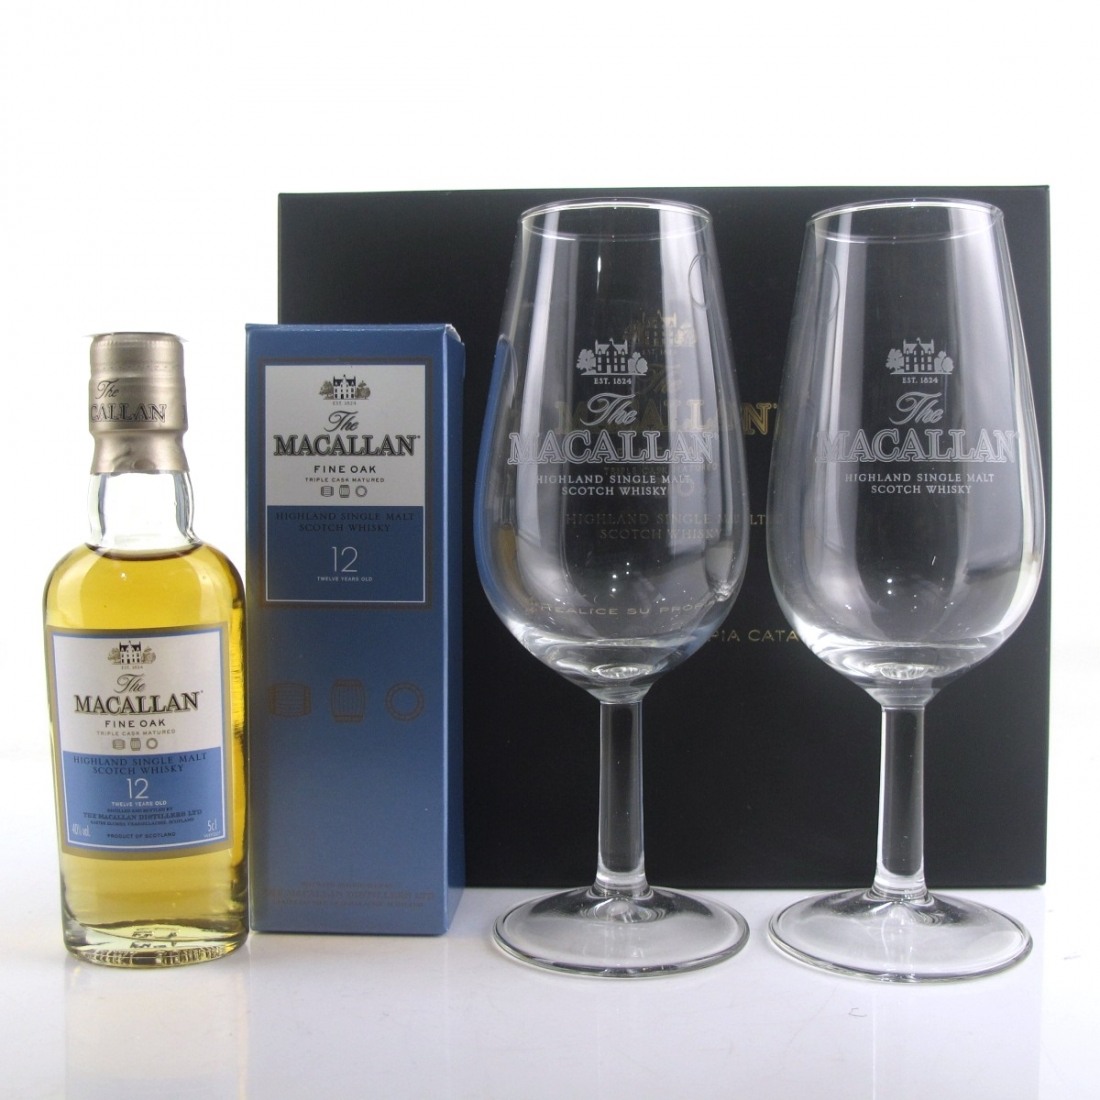 Macallan 12 Year Old Fine Oak Miniature 5cl / with Glasses x 2